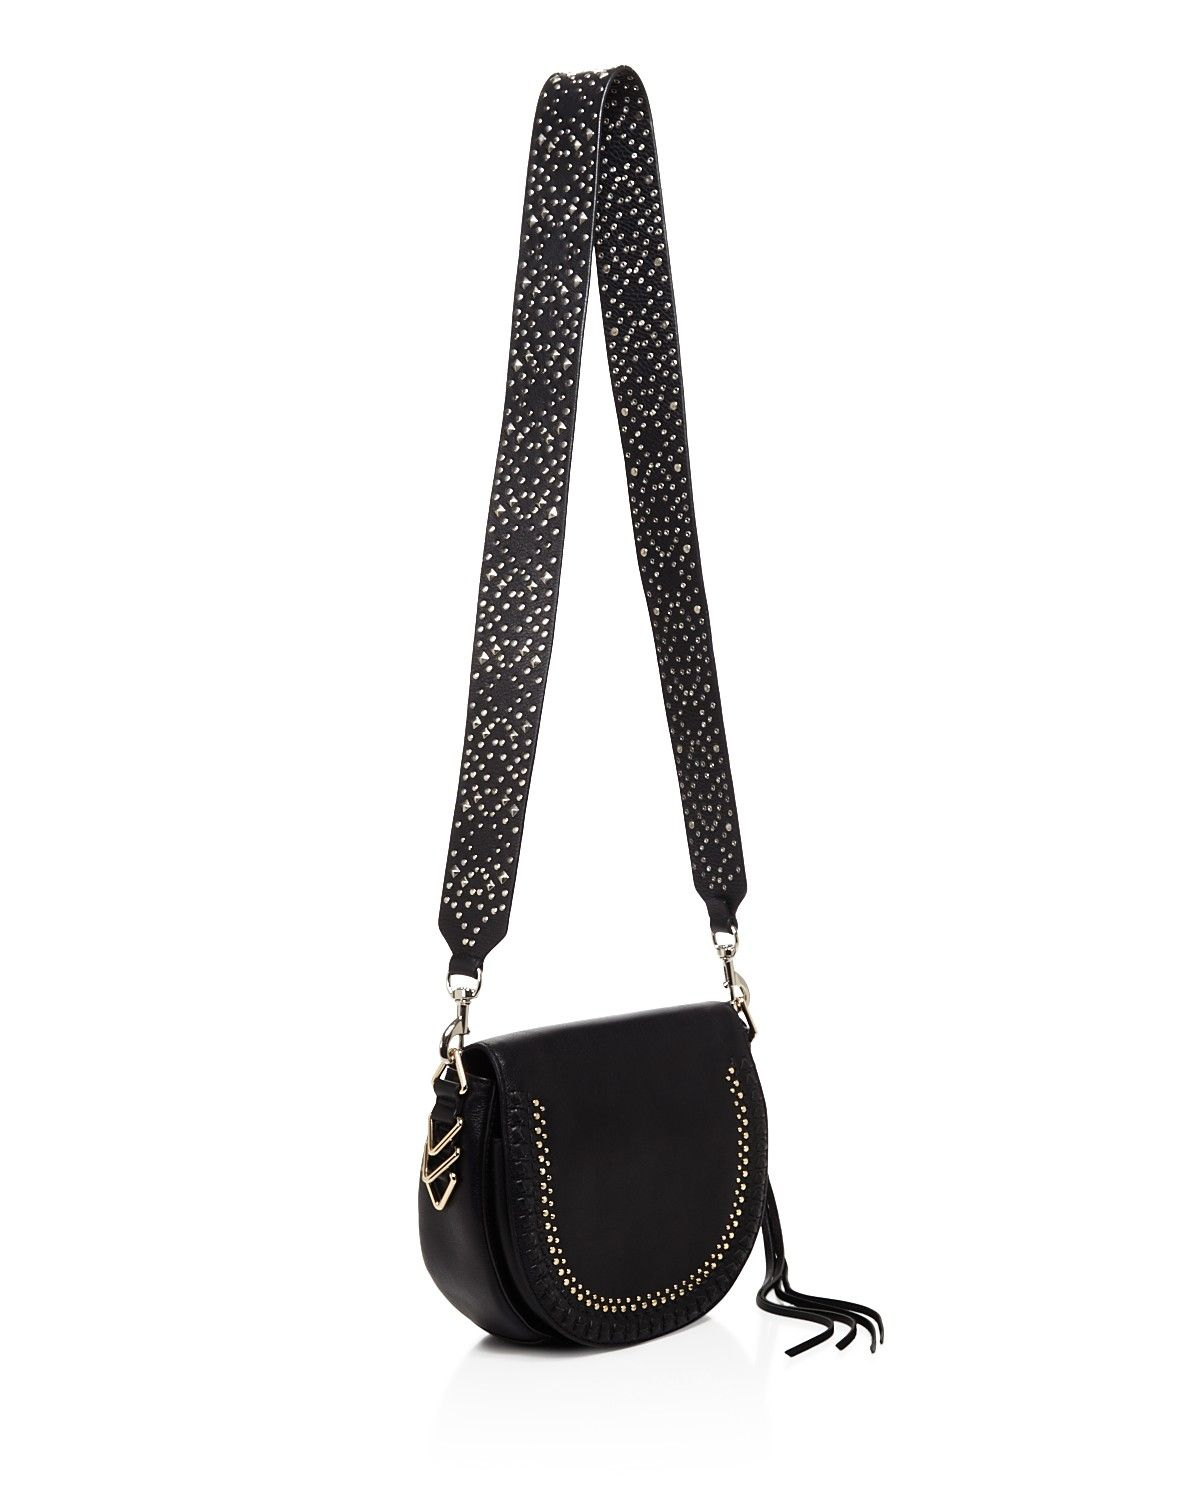 Plucked Straight From Rebecca Minkoff S Latest Runway Show This Studded Handbag Strap Is A Rockstar Extra Just Clip It On To Any Carryall For An Instant